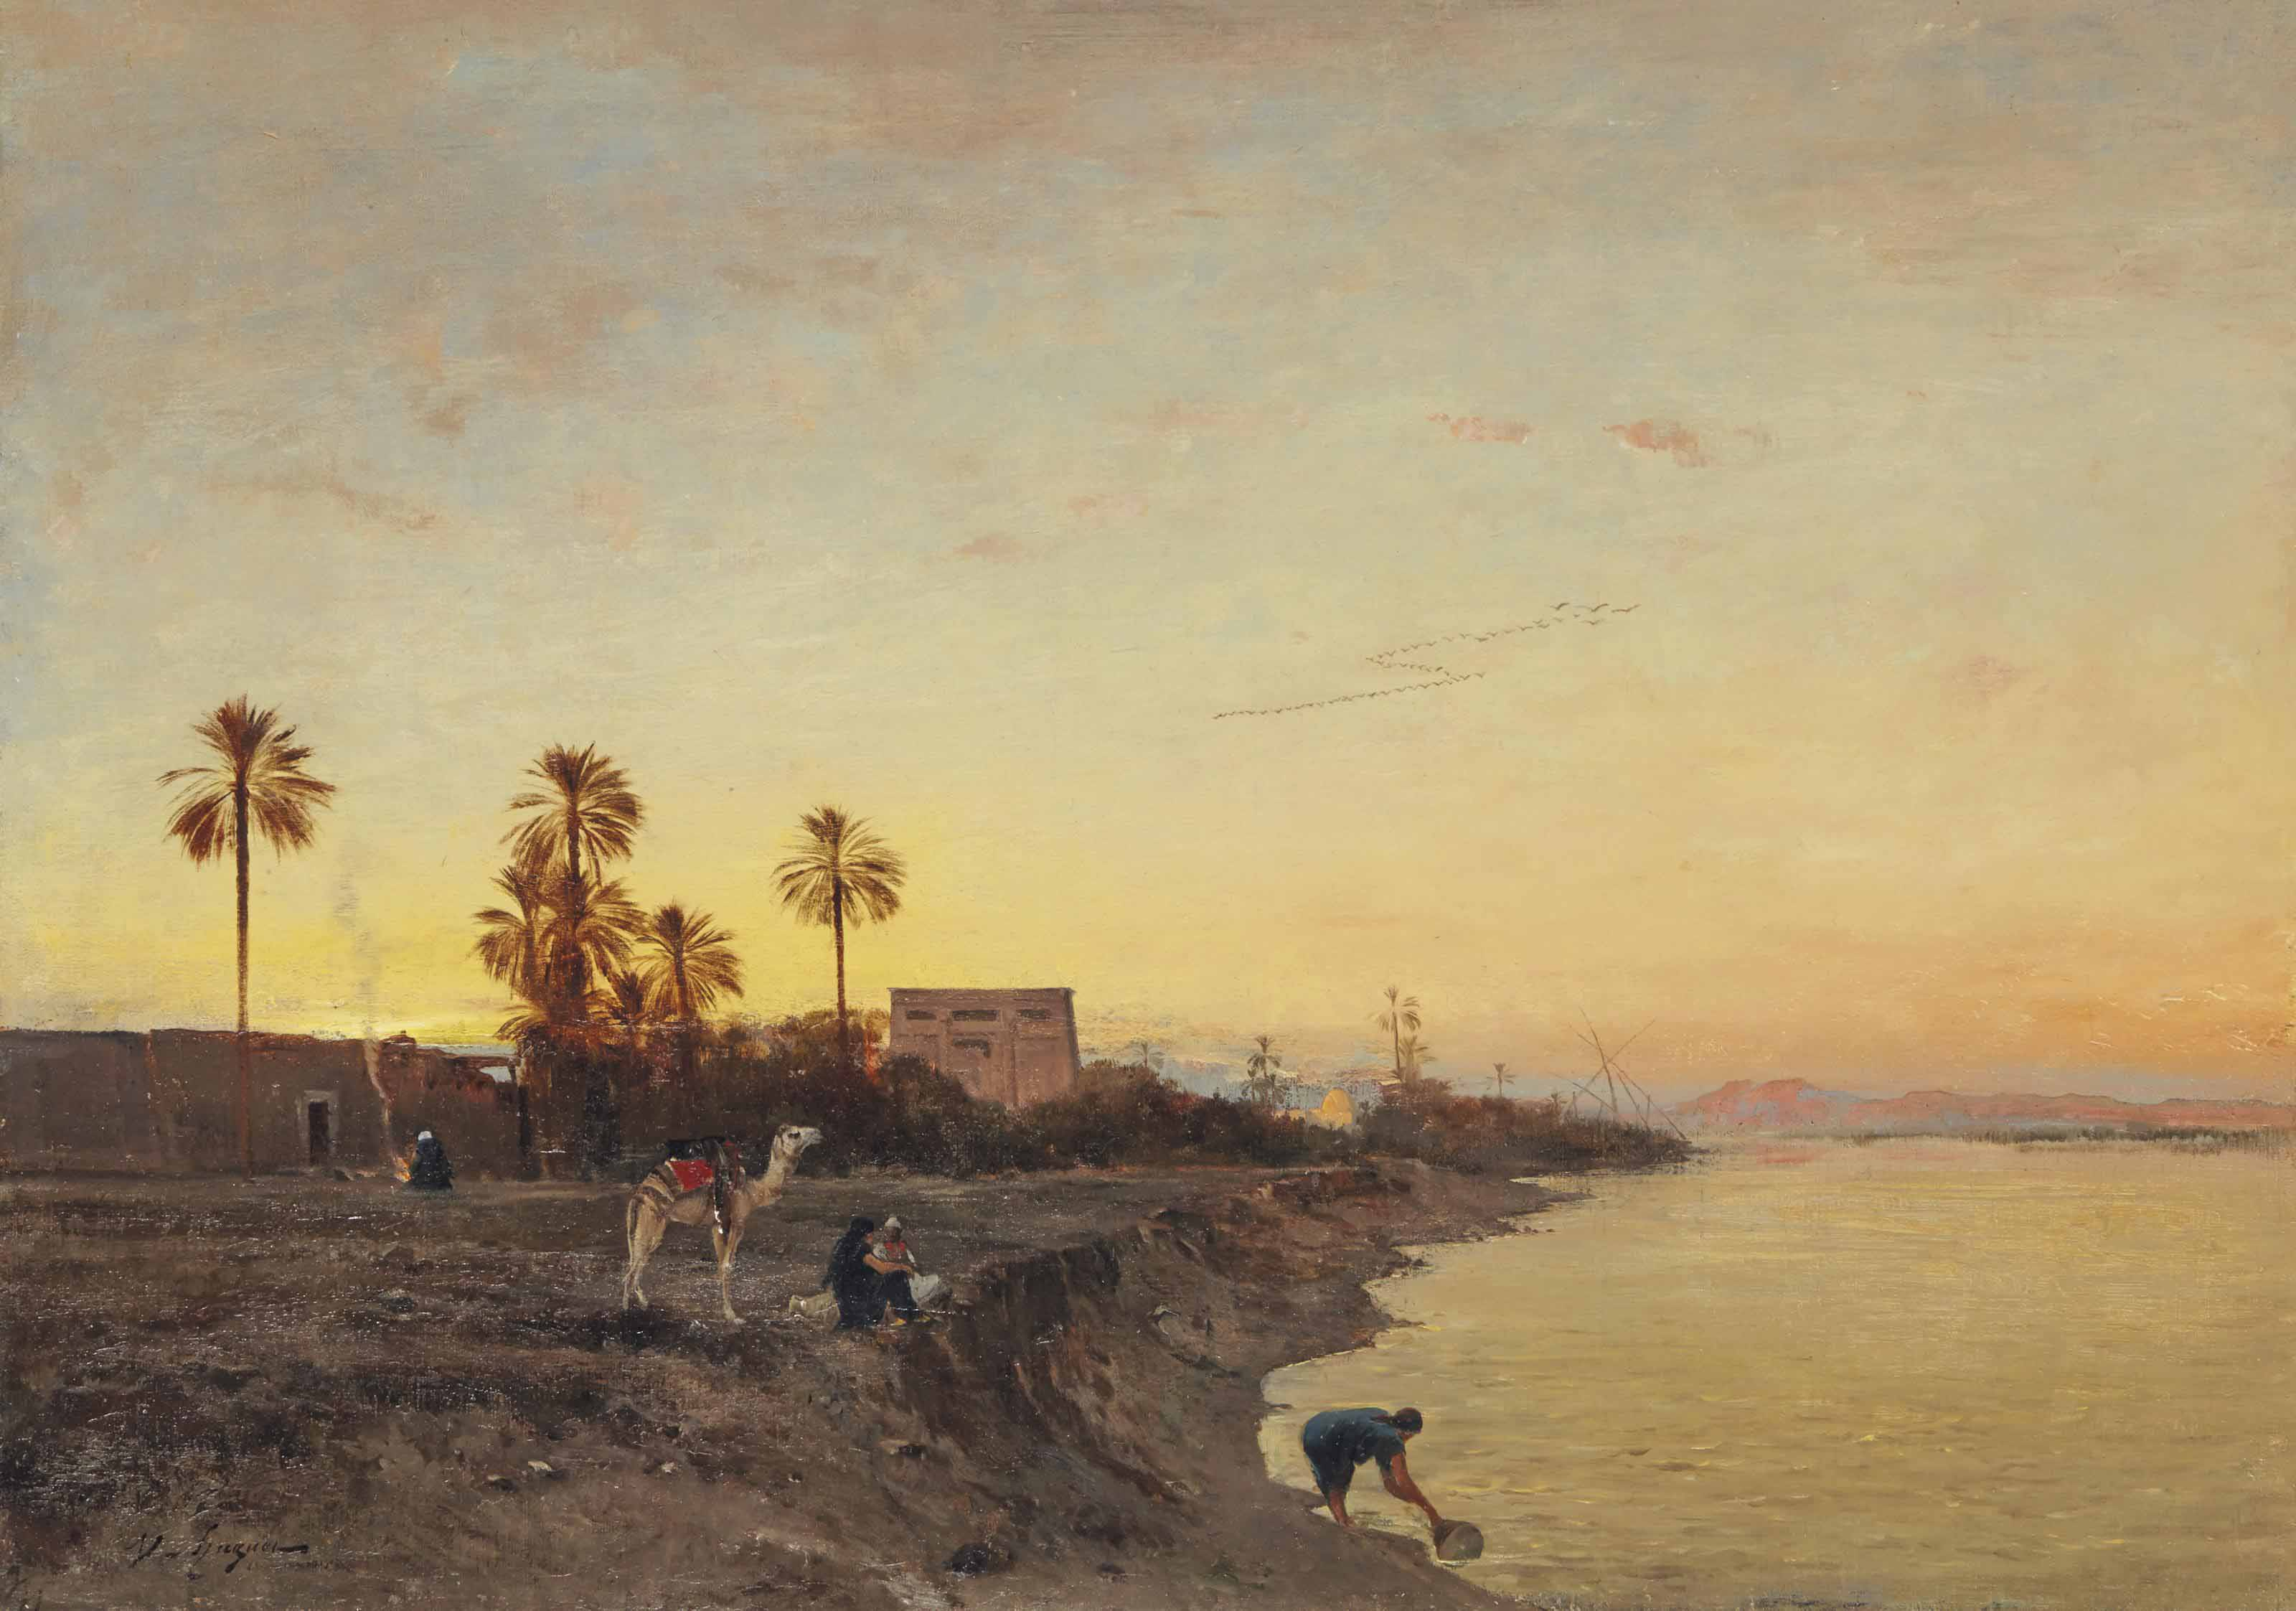 On the banks of the Nile, Egypt